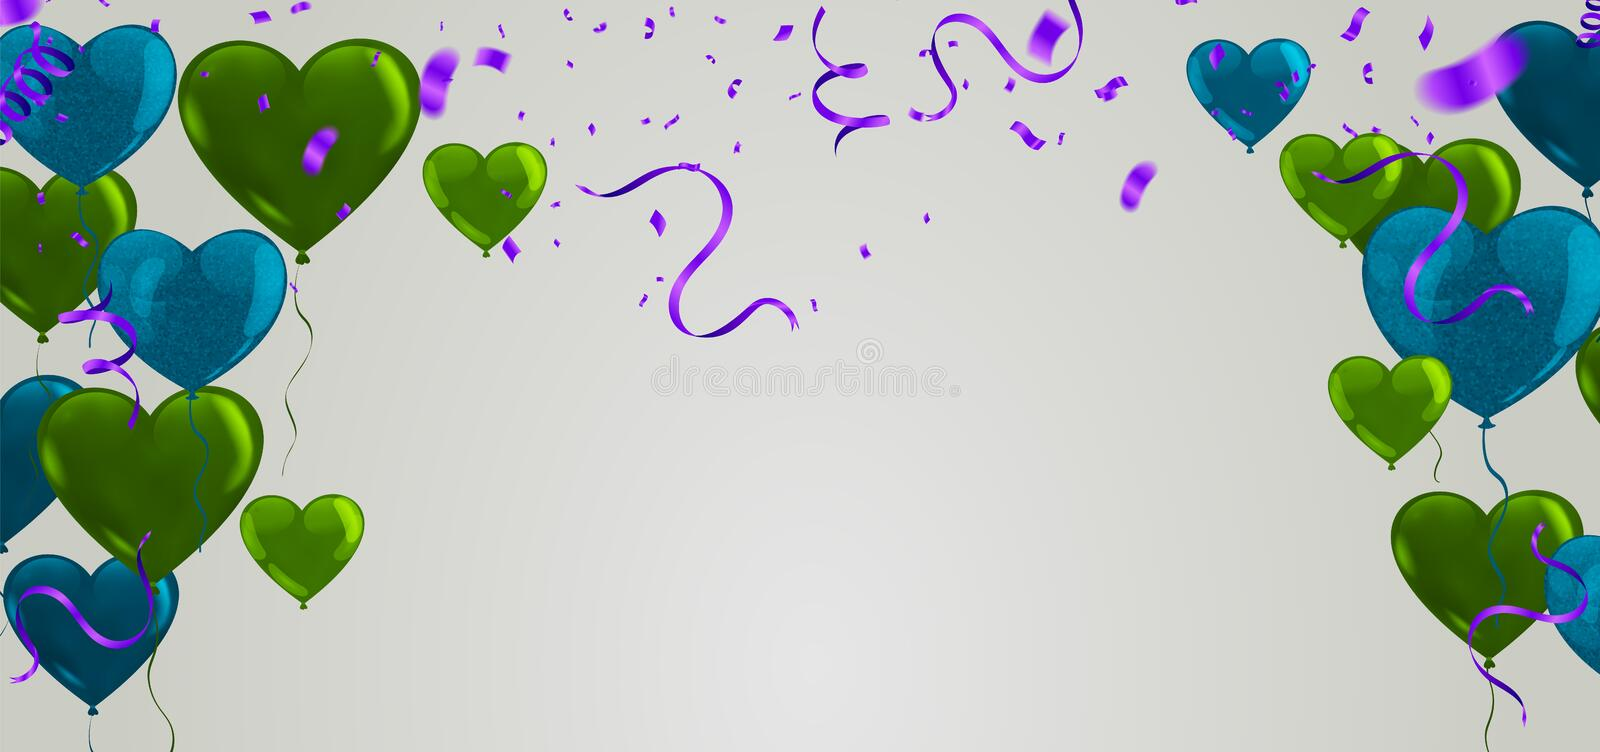 Celebration banner with green balloons background and Saint Patrick`s Day party stock illustration